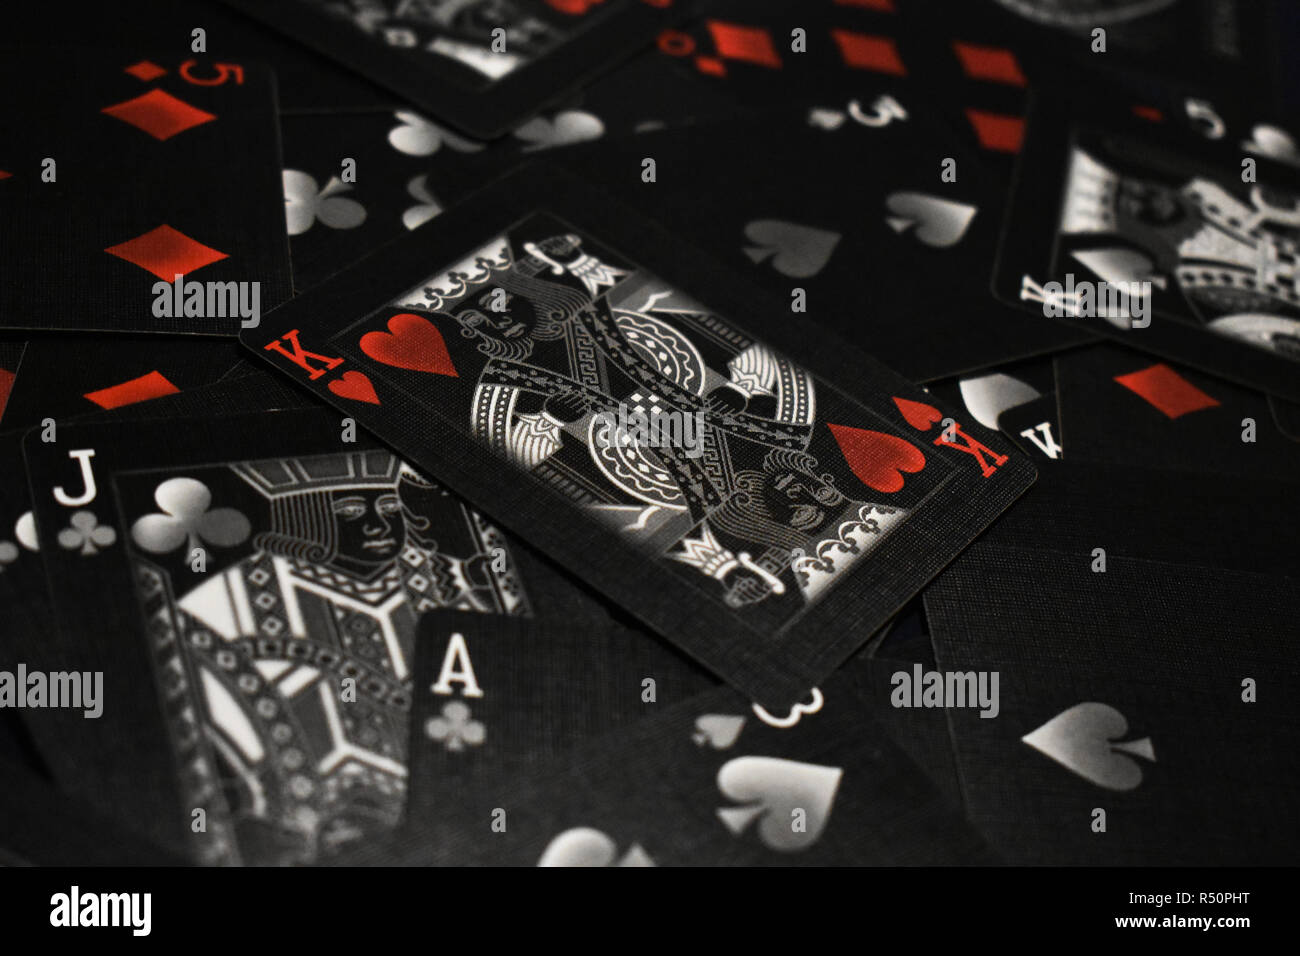 Stunning shot of black and white playing cards, with the King of Hearts resting atop the pile. Hints of red add emphasis to the heart symbol. - Stock Image